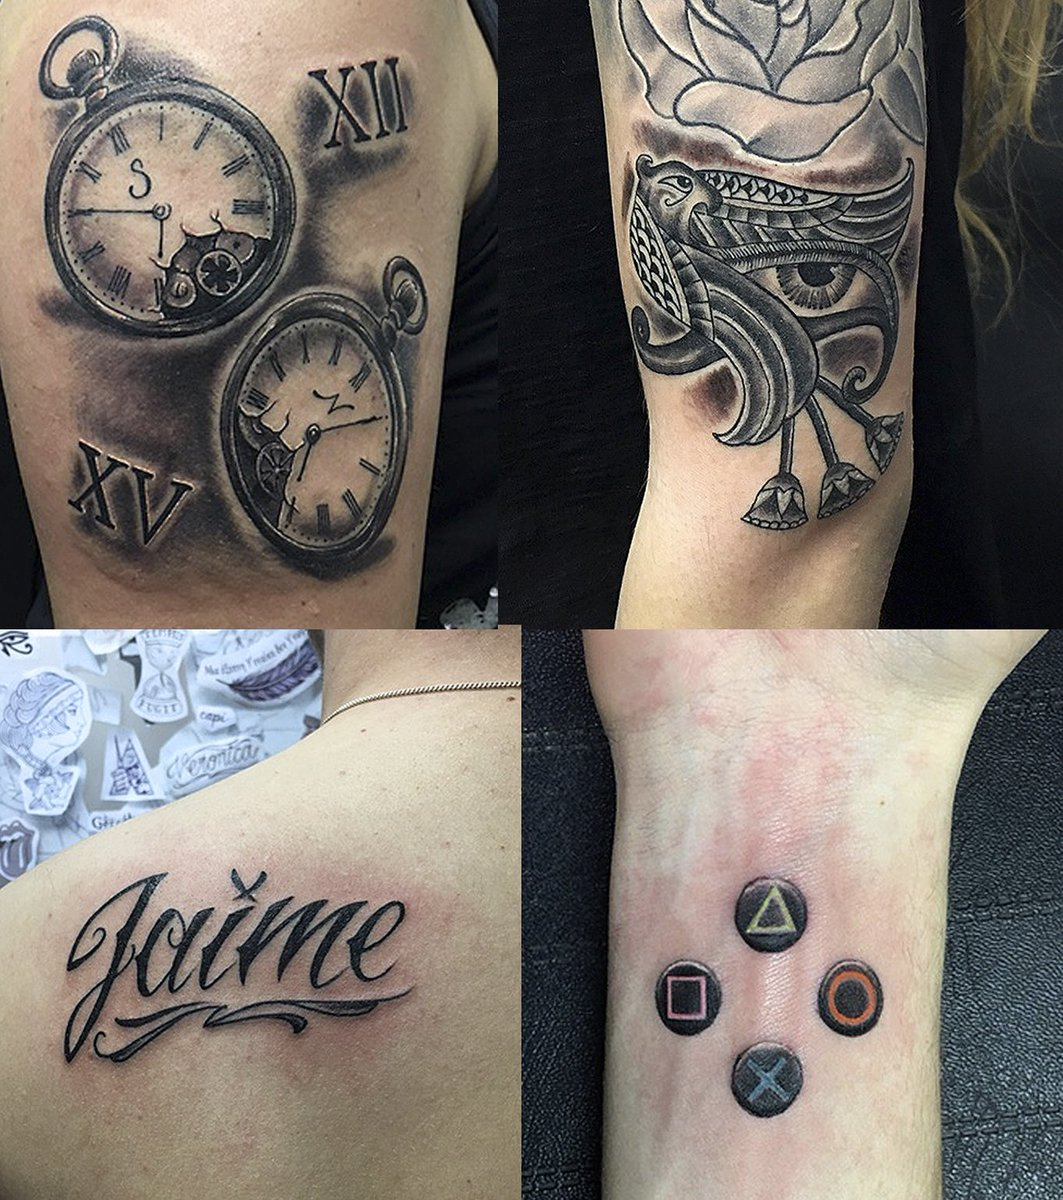 Pura Vida Tatuajes On Twitter Tattoo By At Cesarrbtattoo Reloj